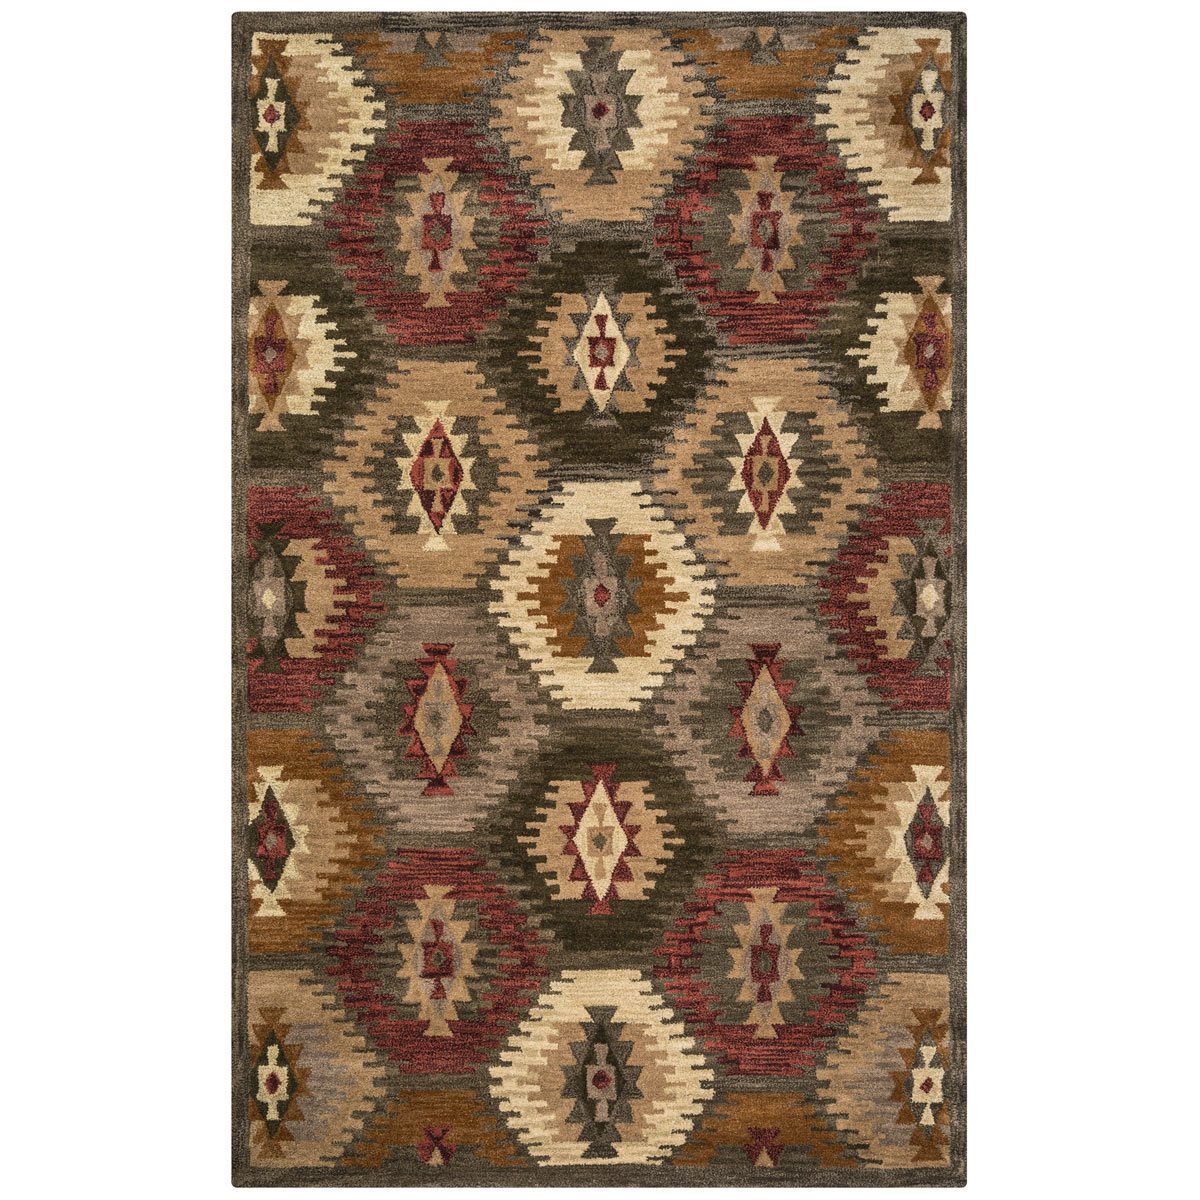 Southwest Honeycomb Rug - 2 x 8